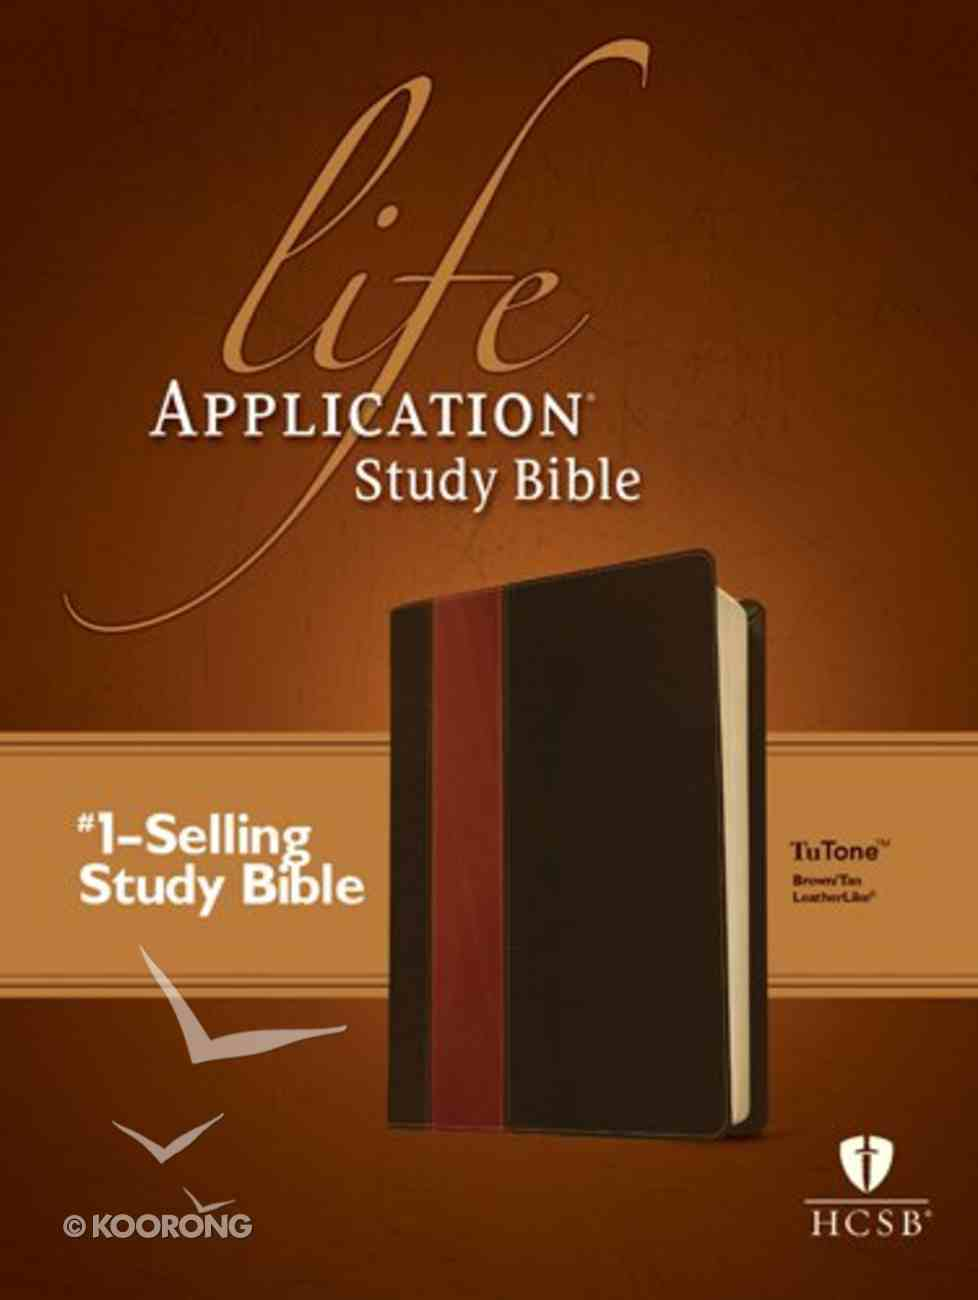 HCSB Life Application Study Bible 2nd Edition Brown/Tan (Red Letter Edition) Imitation Leather